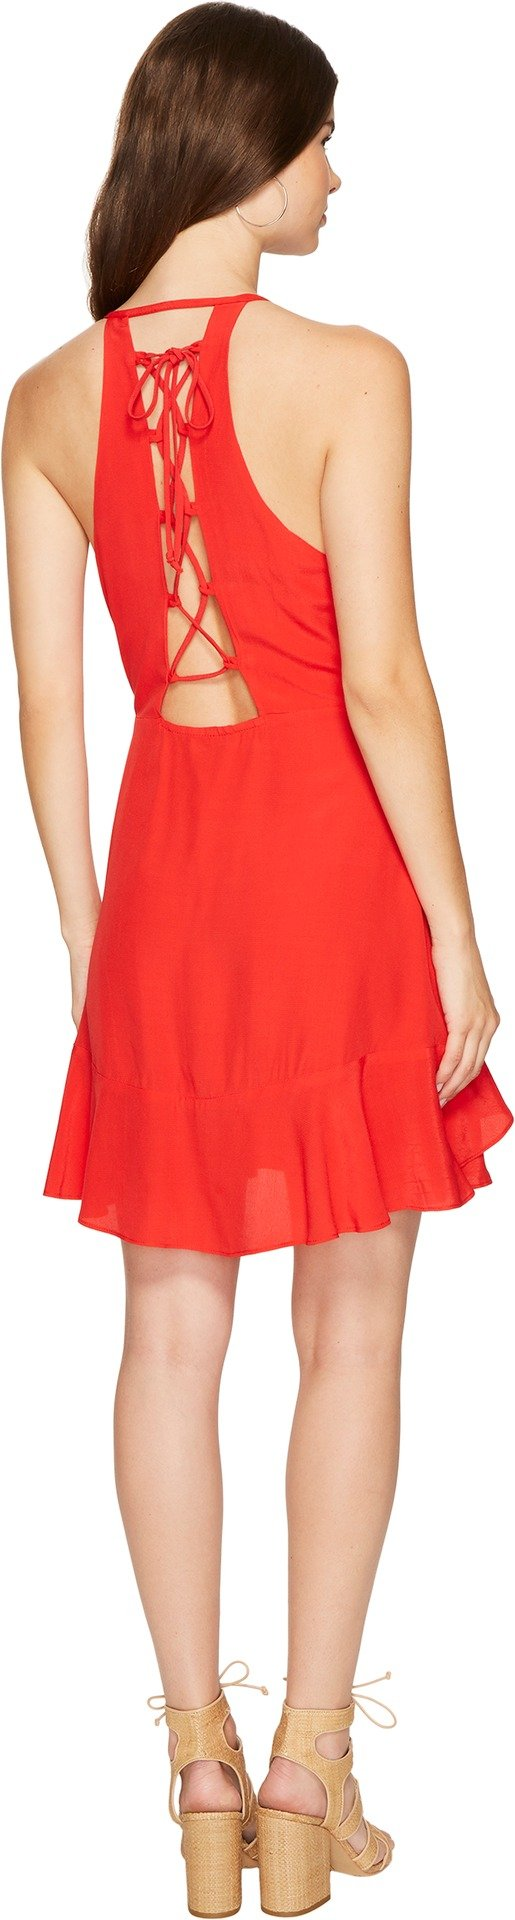 Lucy Love Women's Up All Night Dress Hot Tamale Dress by Lucy Love (Image #3)